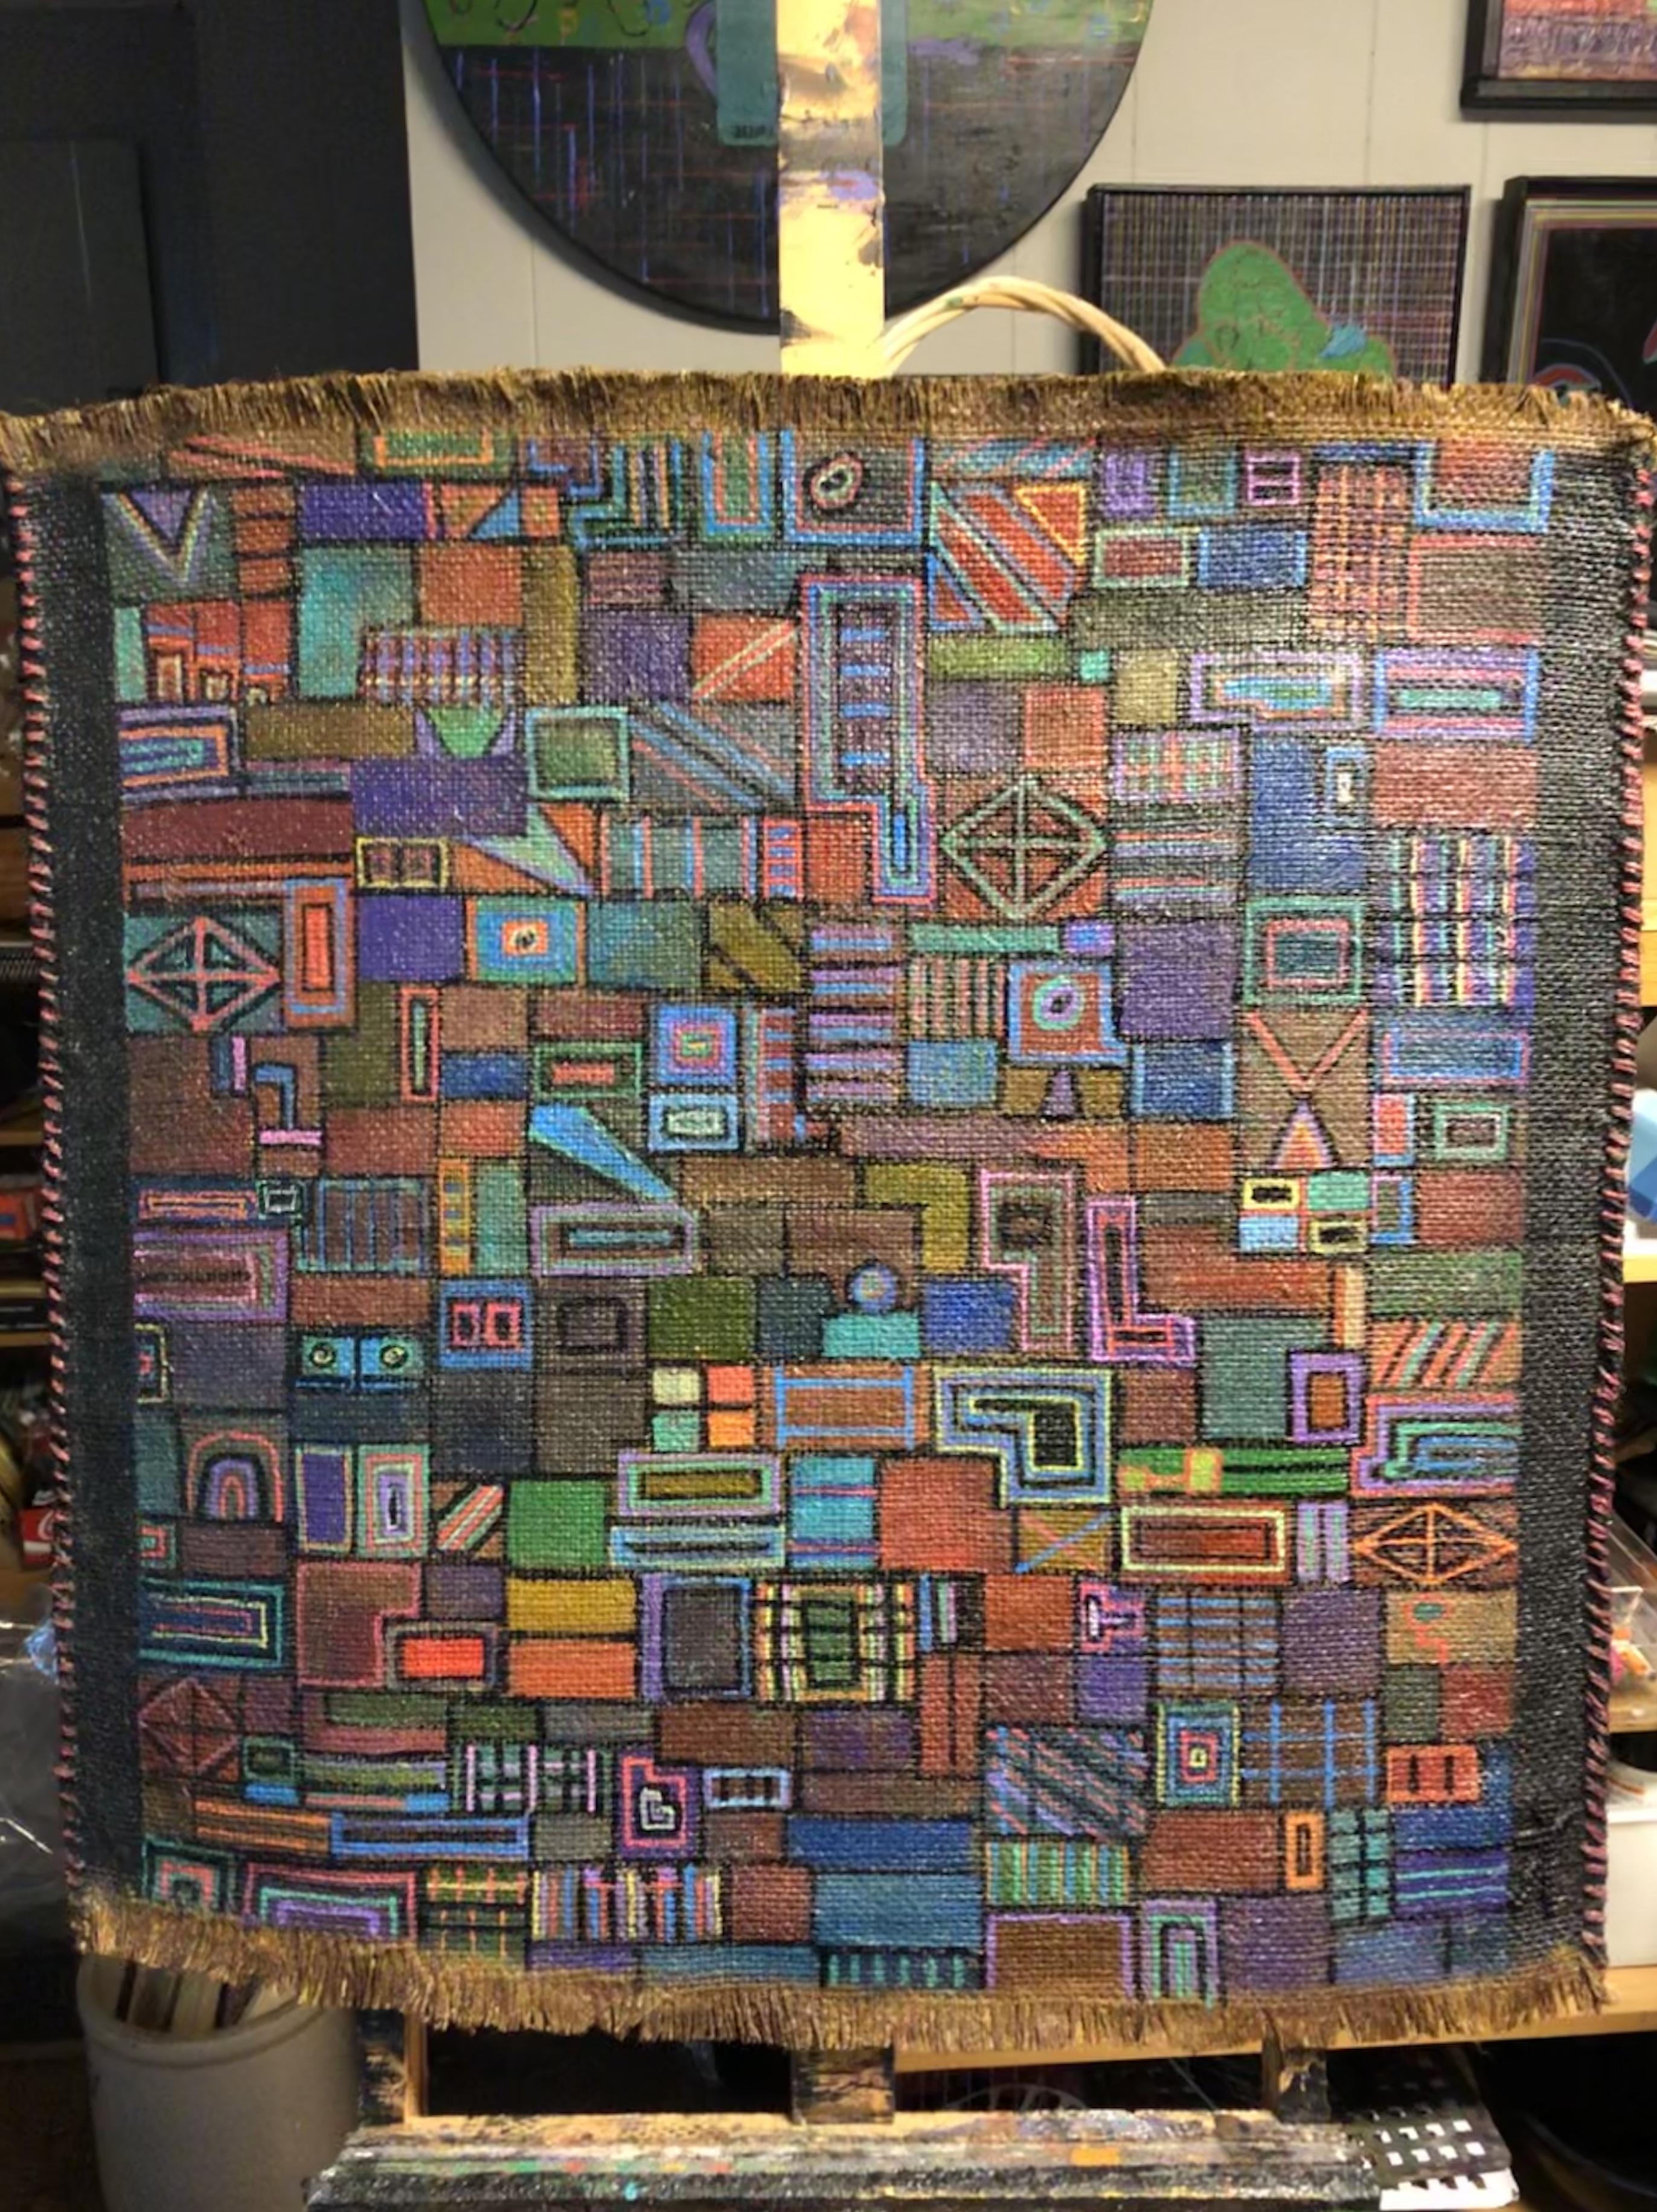 Overlapped 35x30 on Burlap